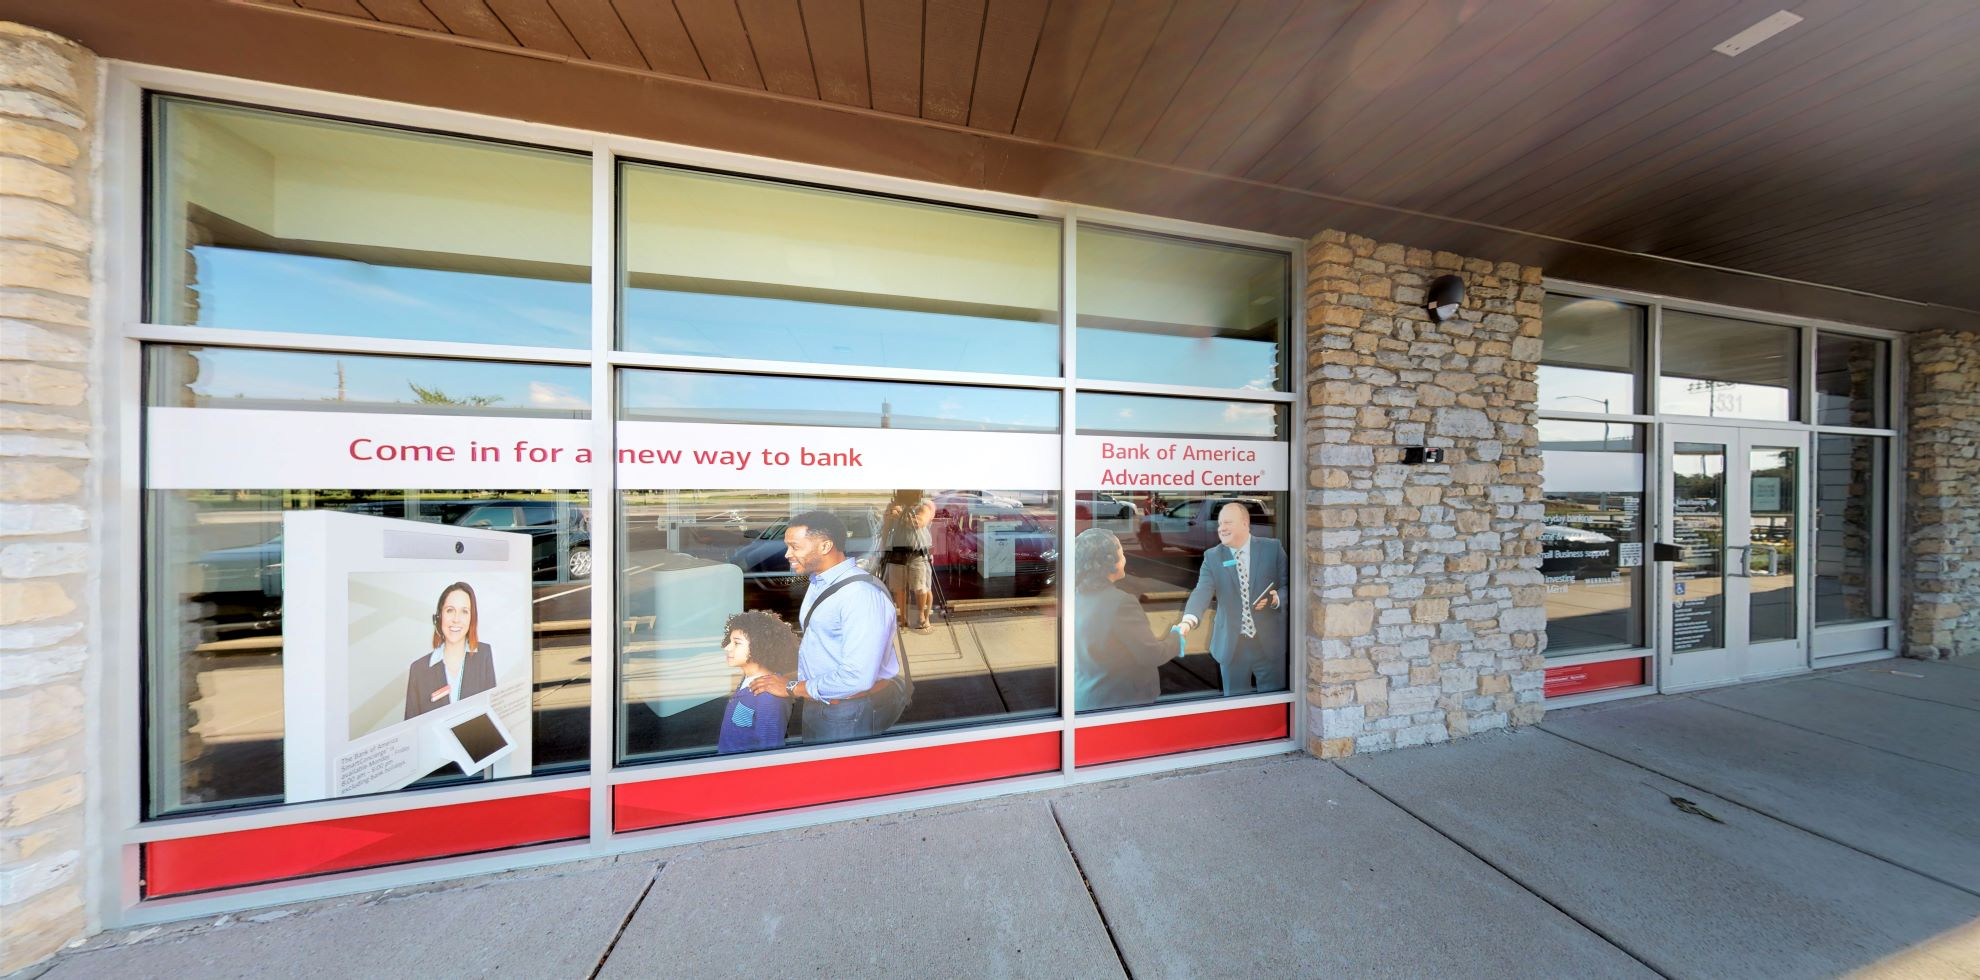 Bank of America Advanced Center with walk-up ATM | 531 Oscar Robertson Blvd, Indianapolis, IN 46202